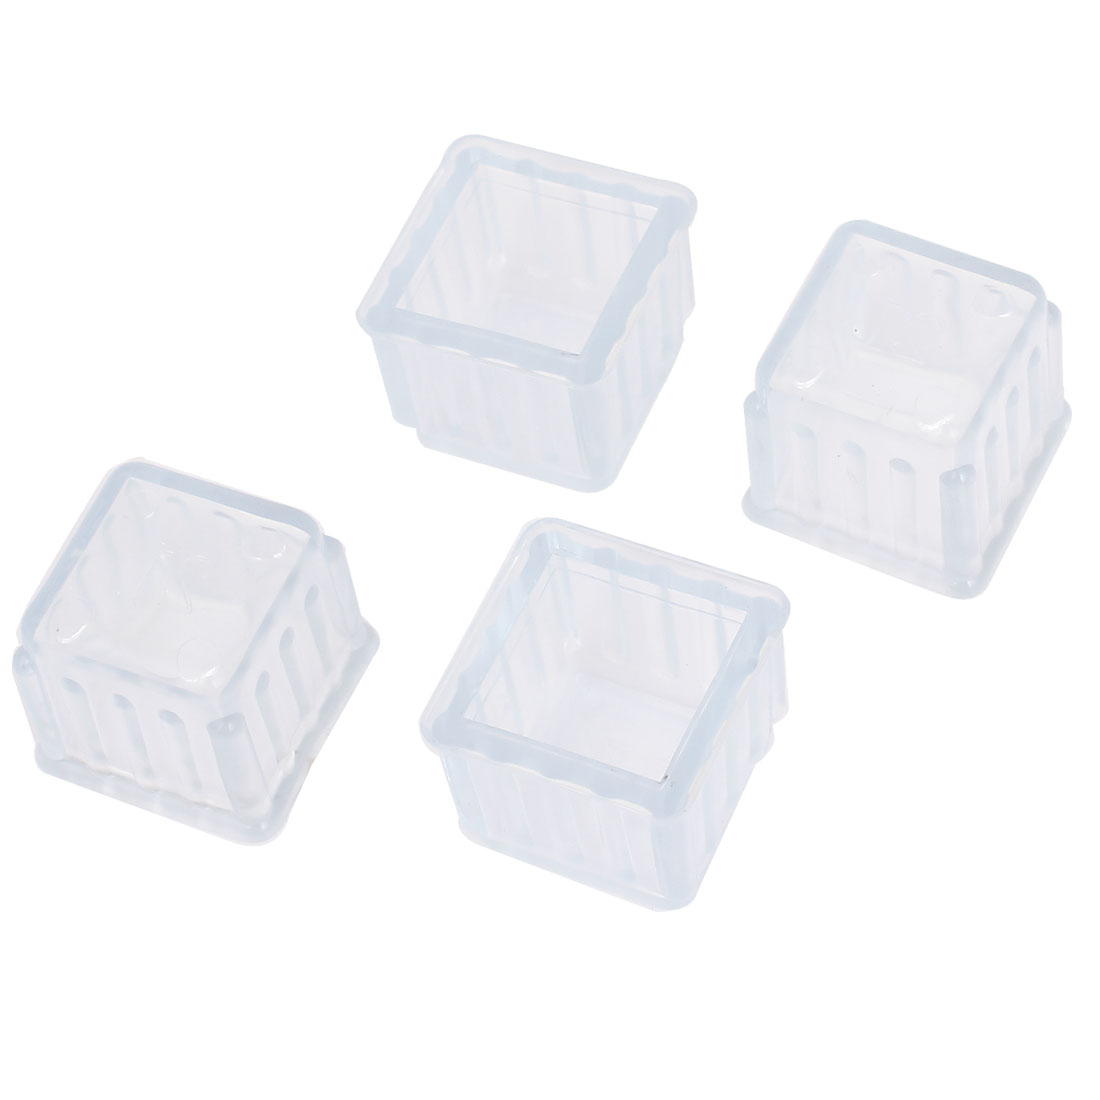 Furniture Chair Leg Foot Rubber Covers Square Protectors 21x21mm 4pcs Clear